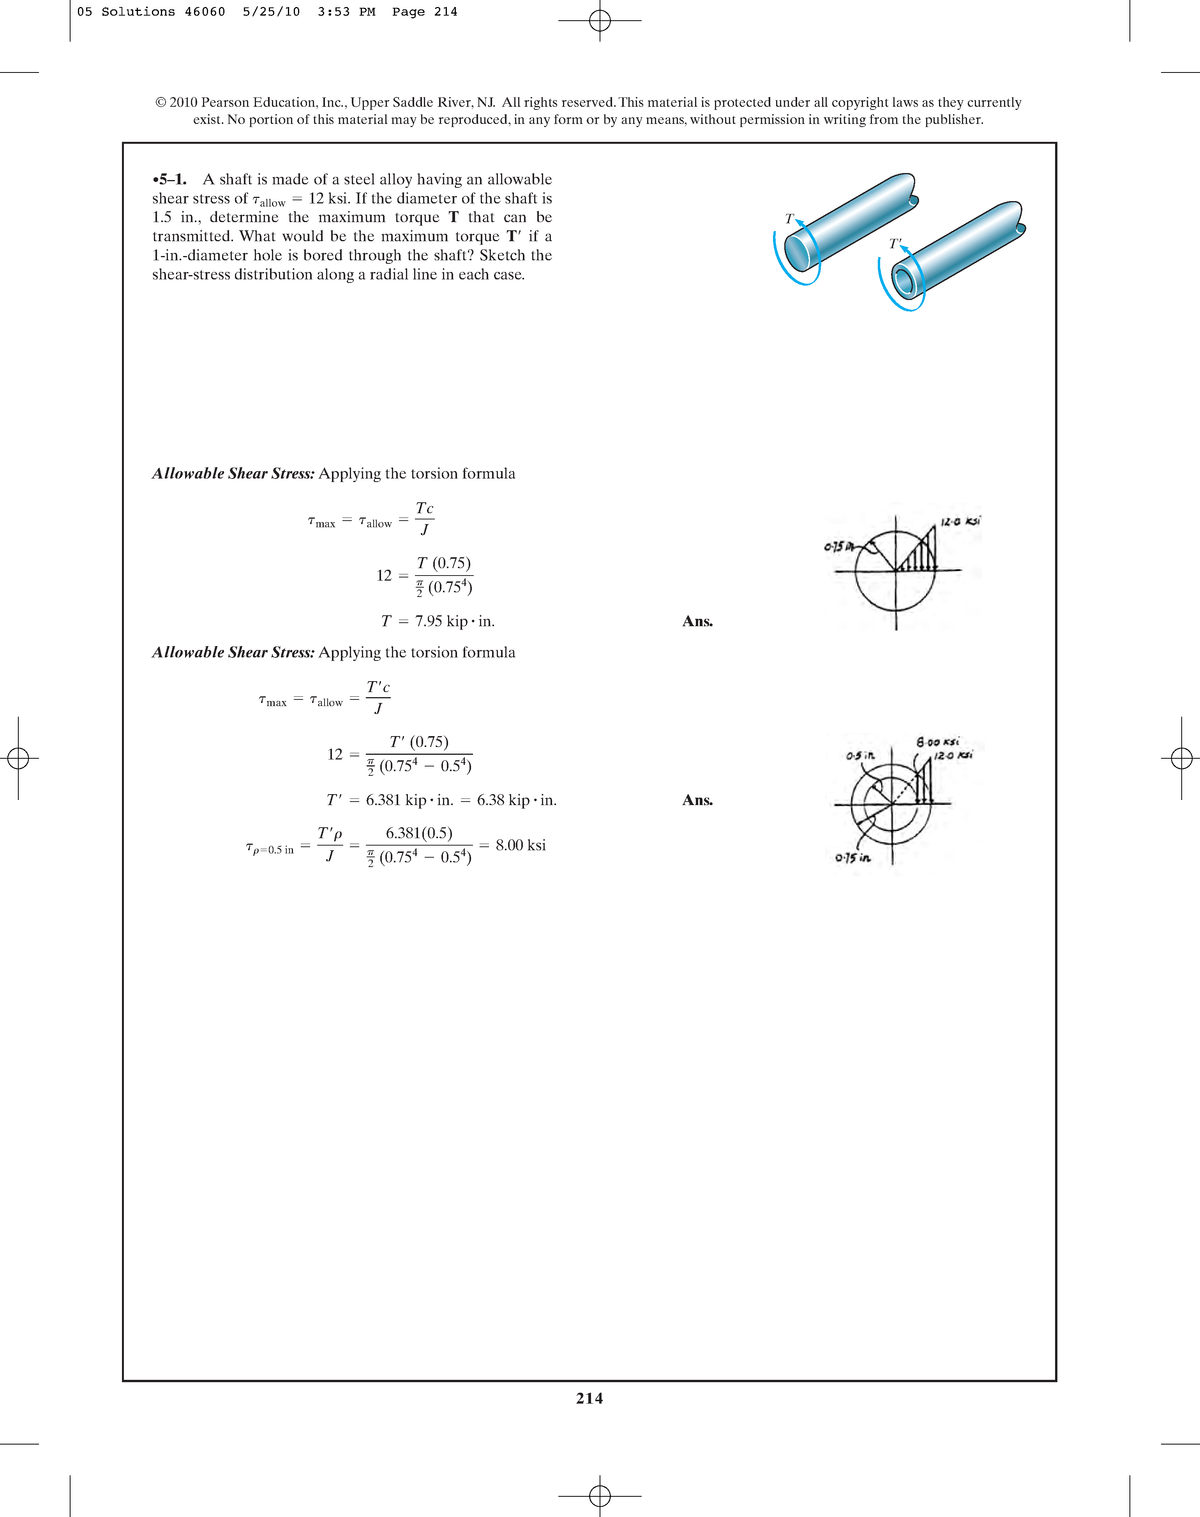 Chapter 05 - Solution manual Mechanics of Materials - MOM